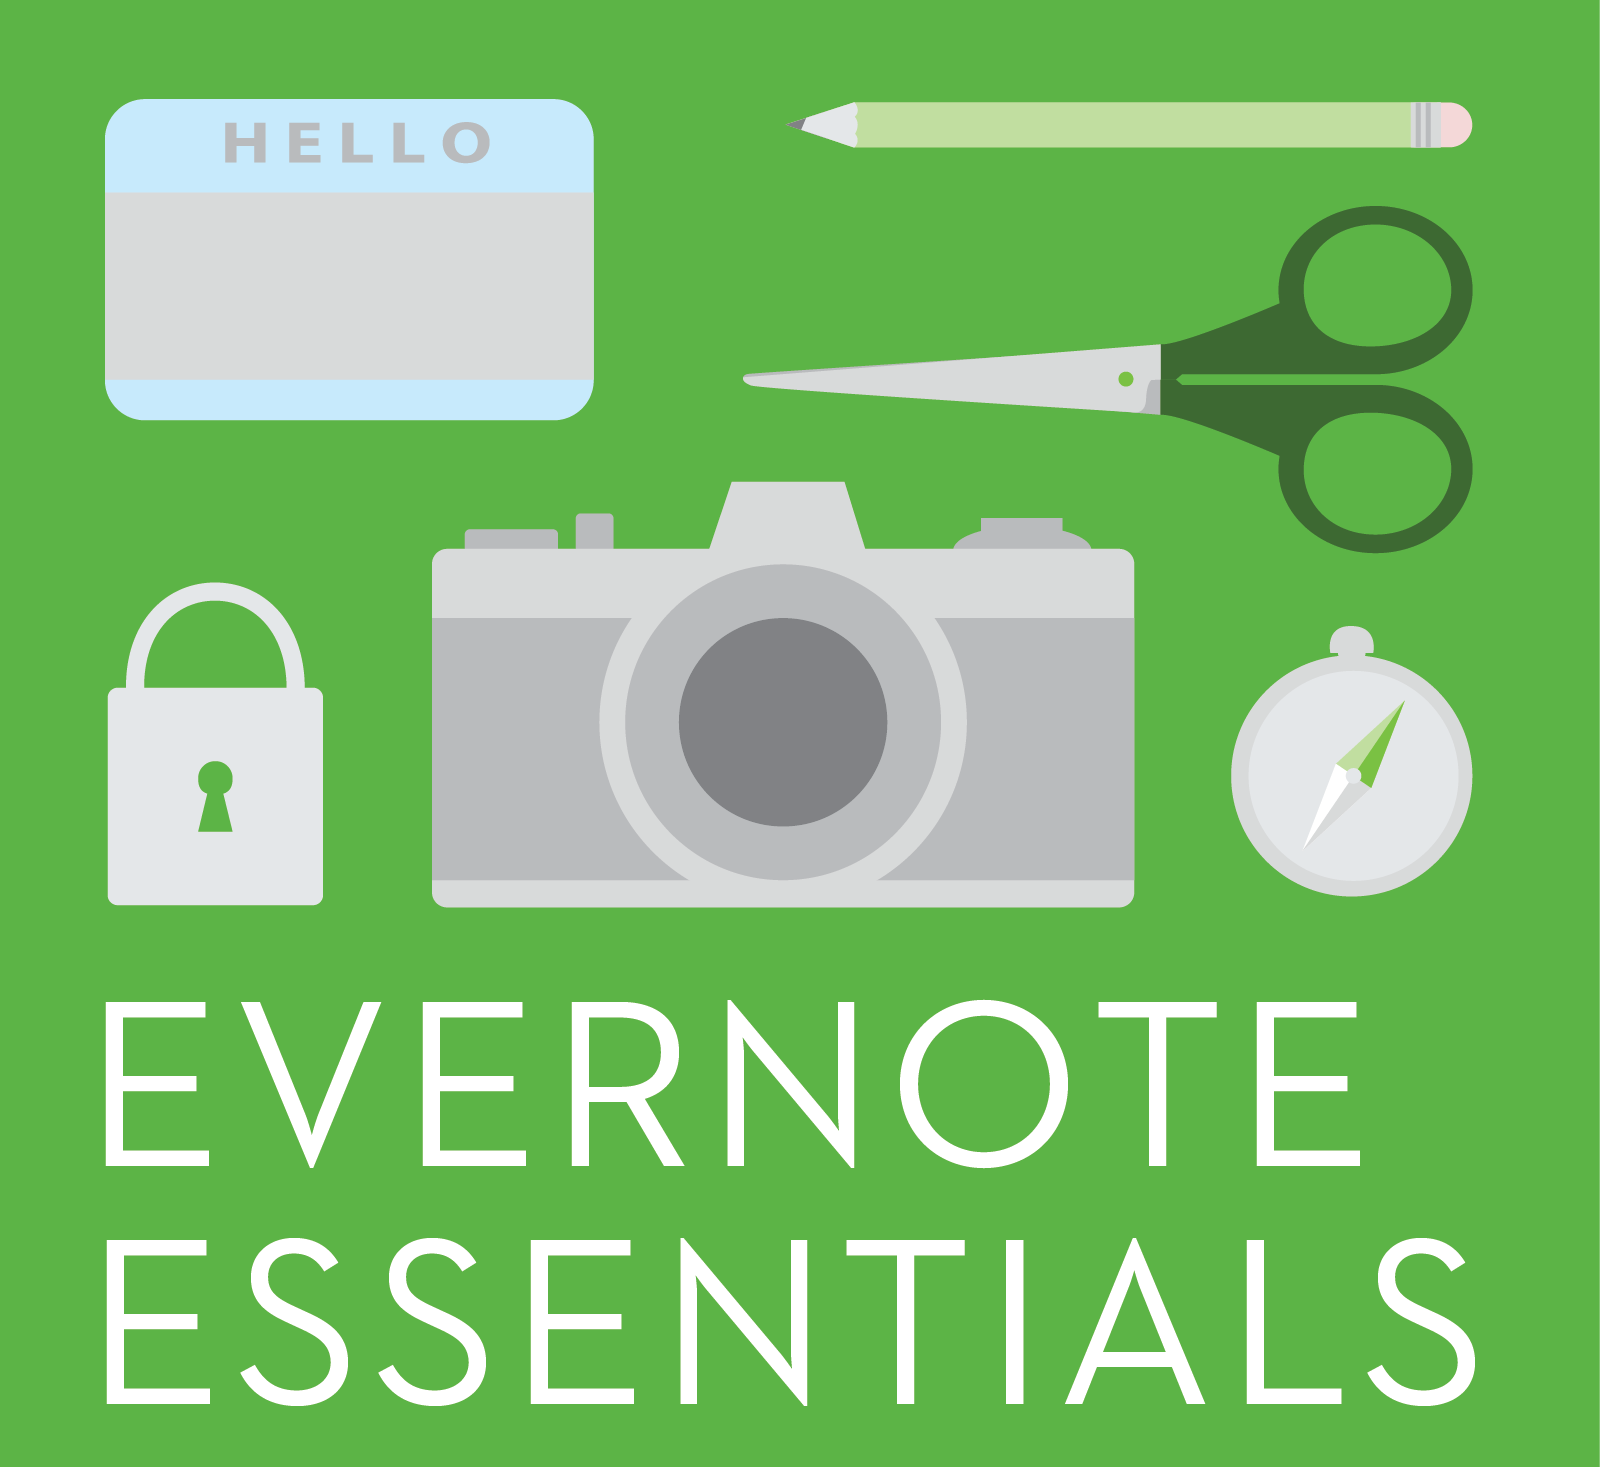 evernote-essentials